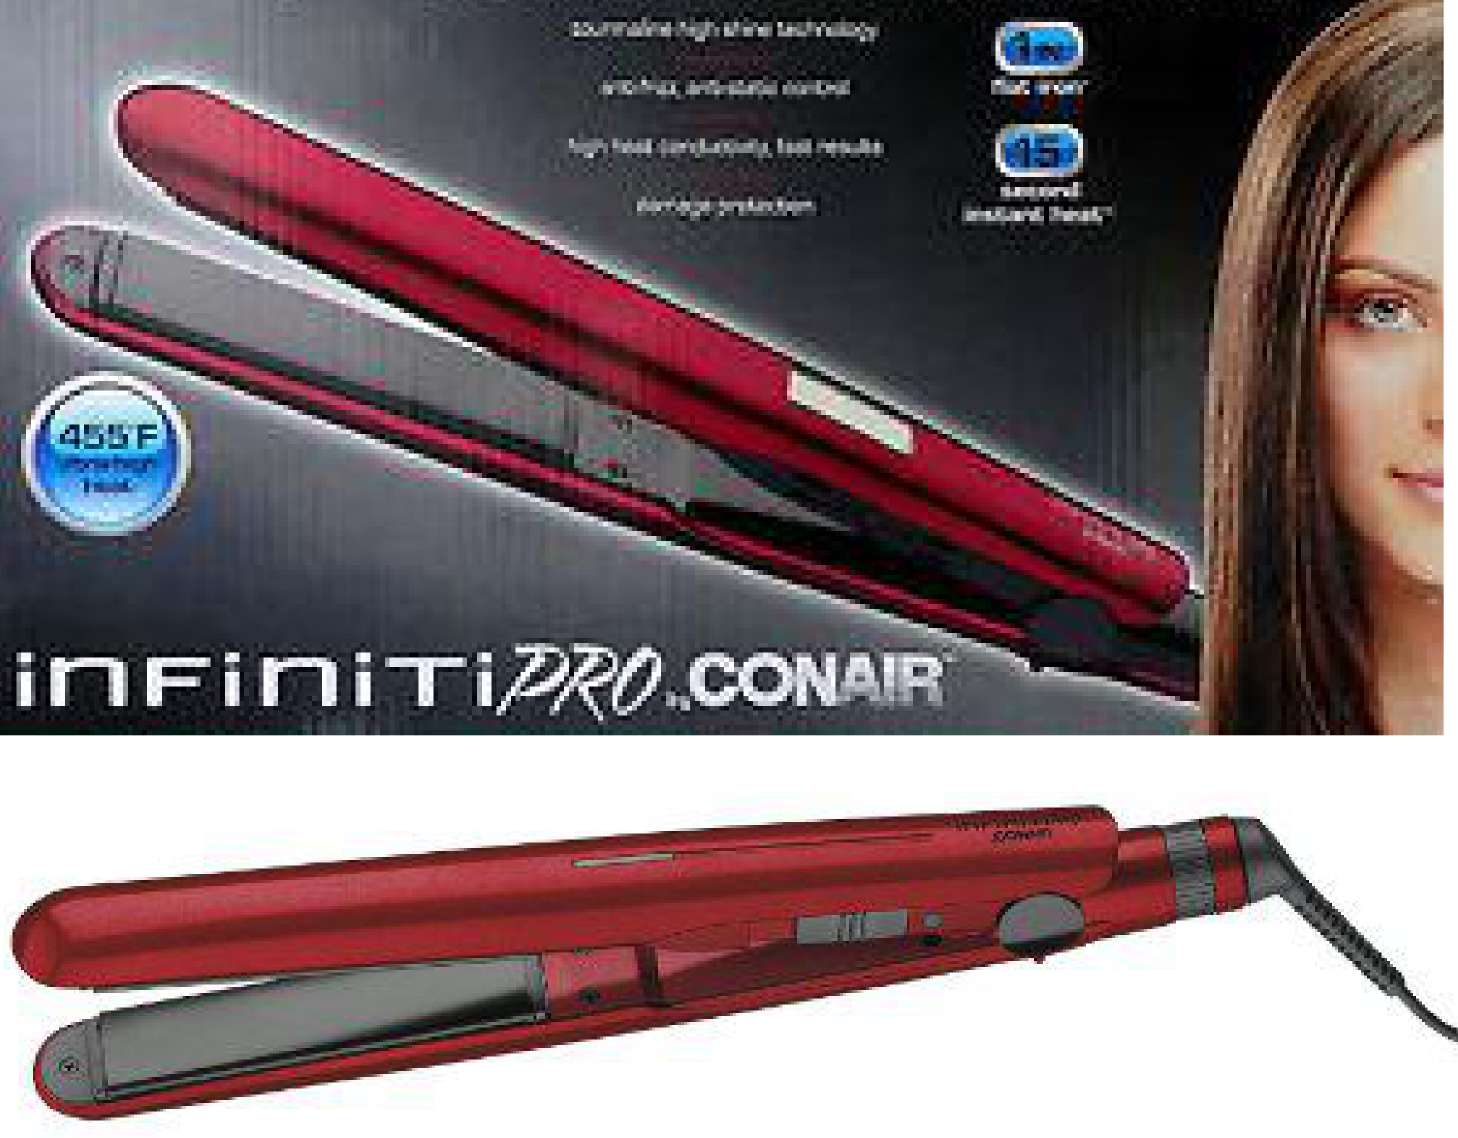 Best Flat Iron For Curly Hair Thick Hair Amp More Top 10